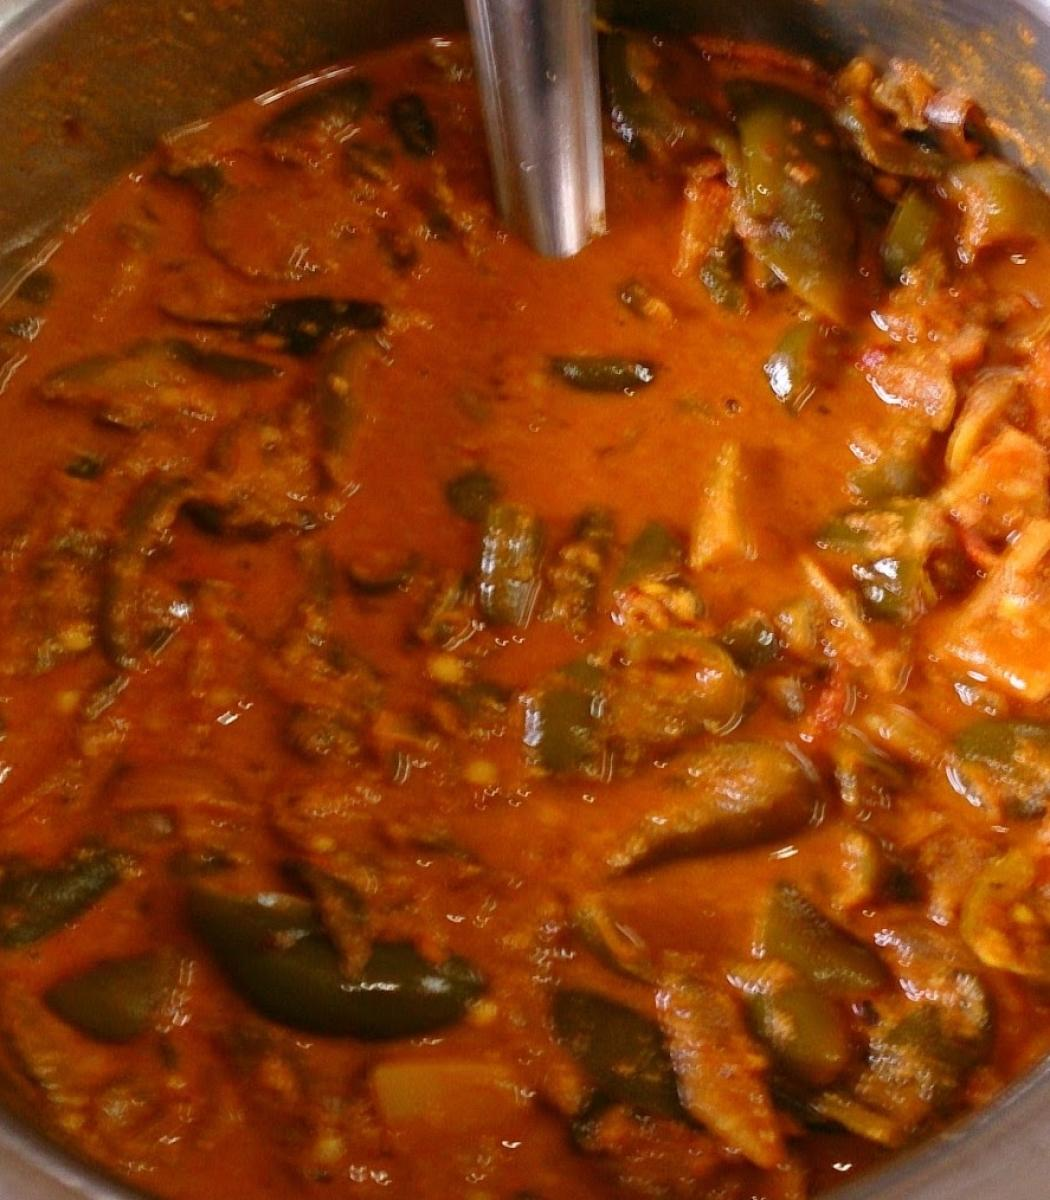 Ennegai is a gravy made of brinjal.